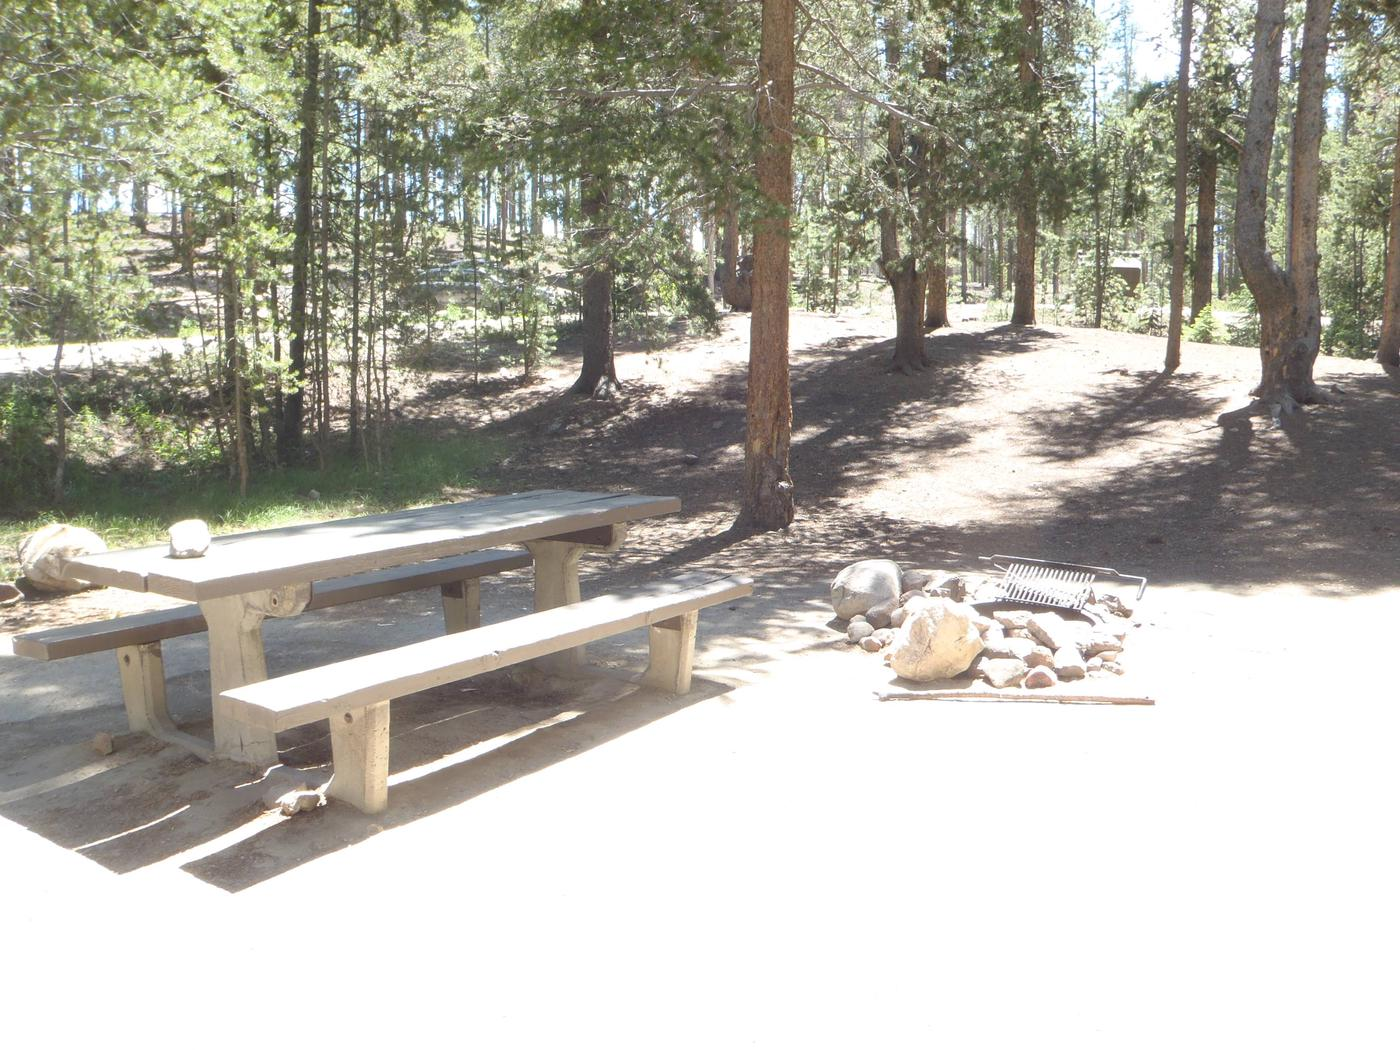 Molly Brown Campground, site 2 picnic table and fire ring